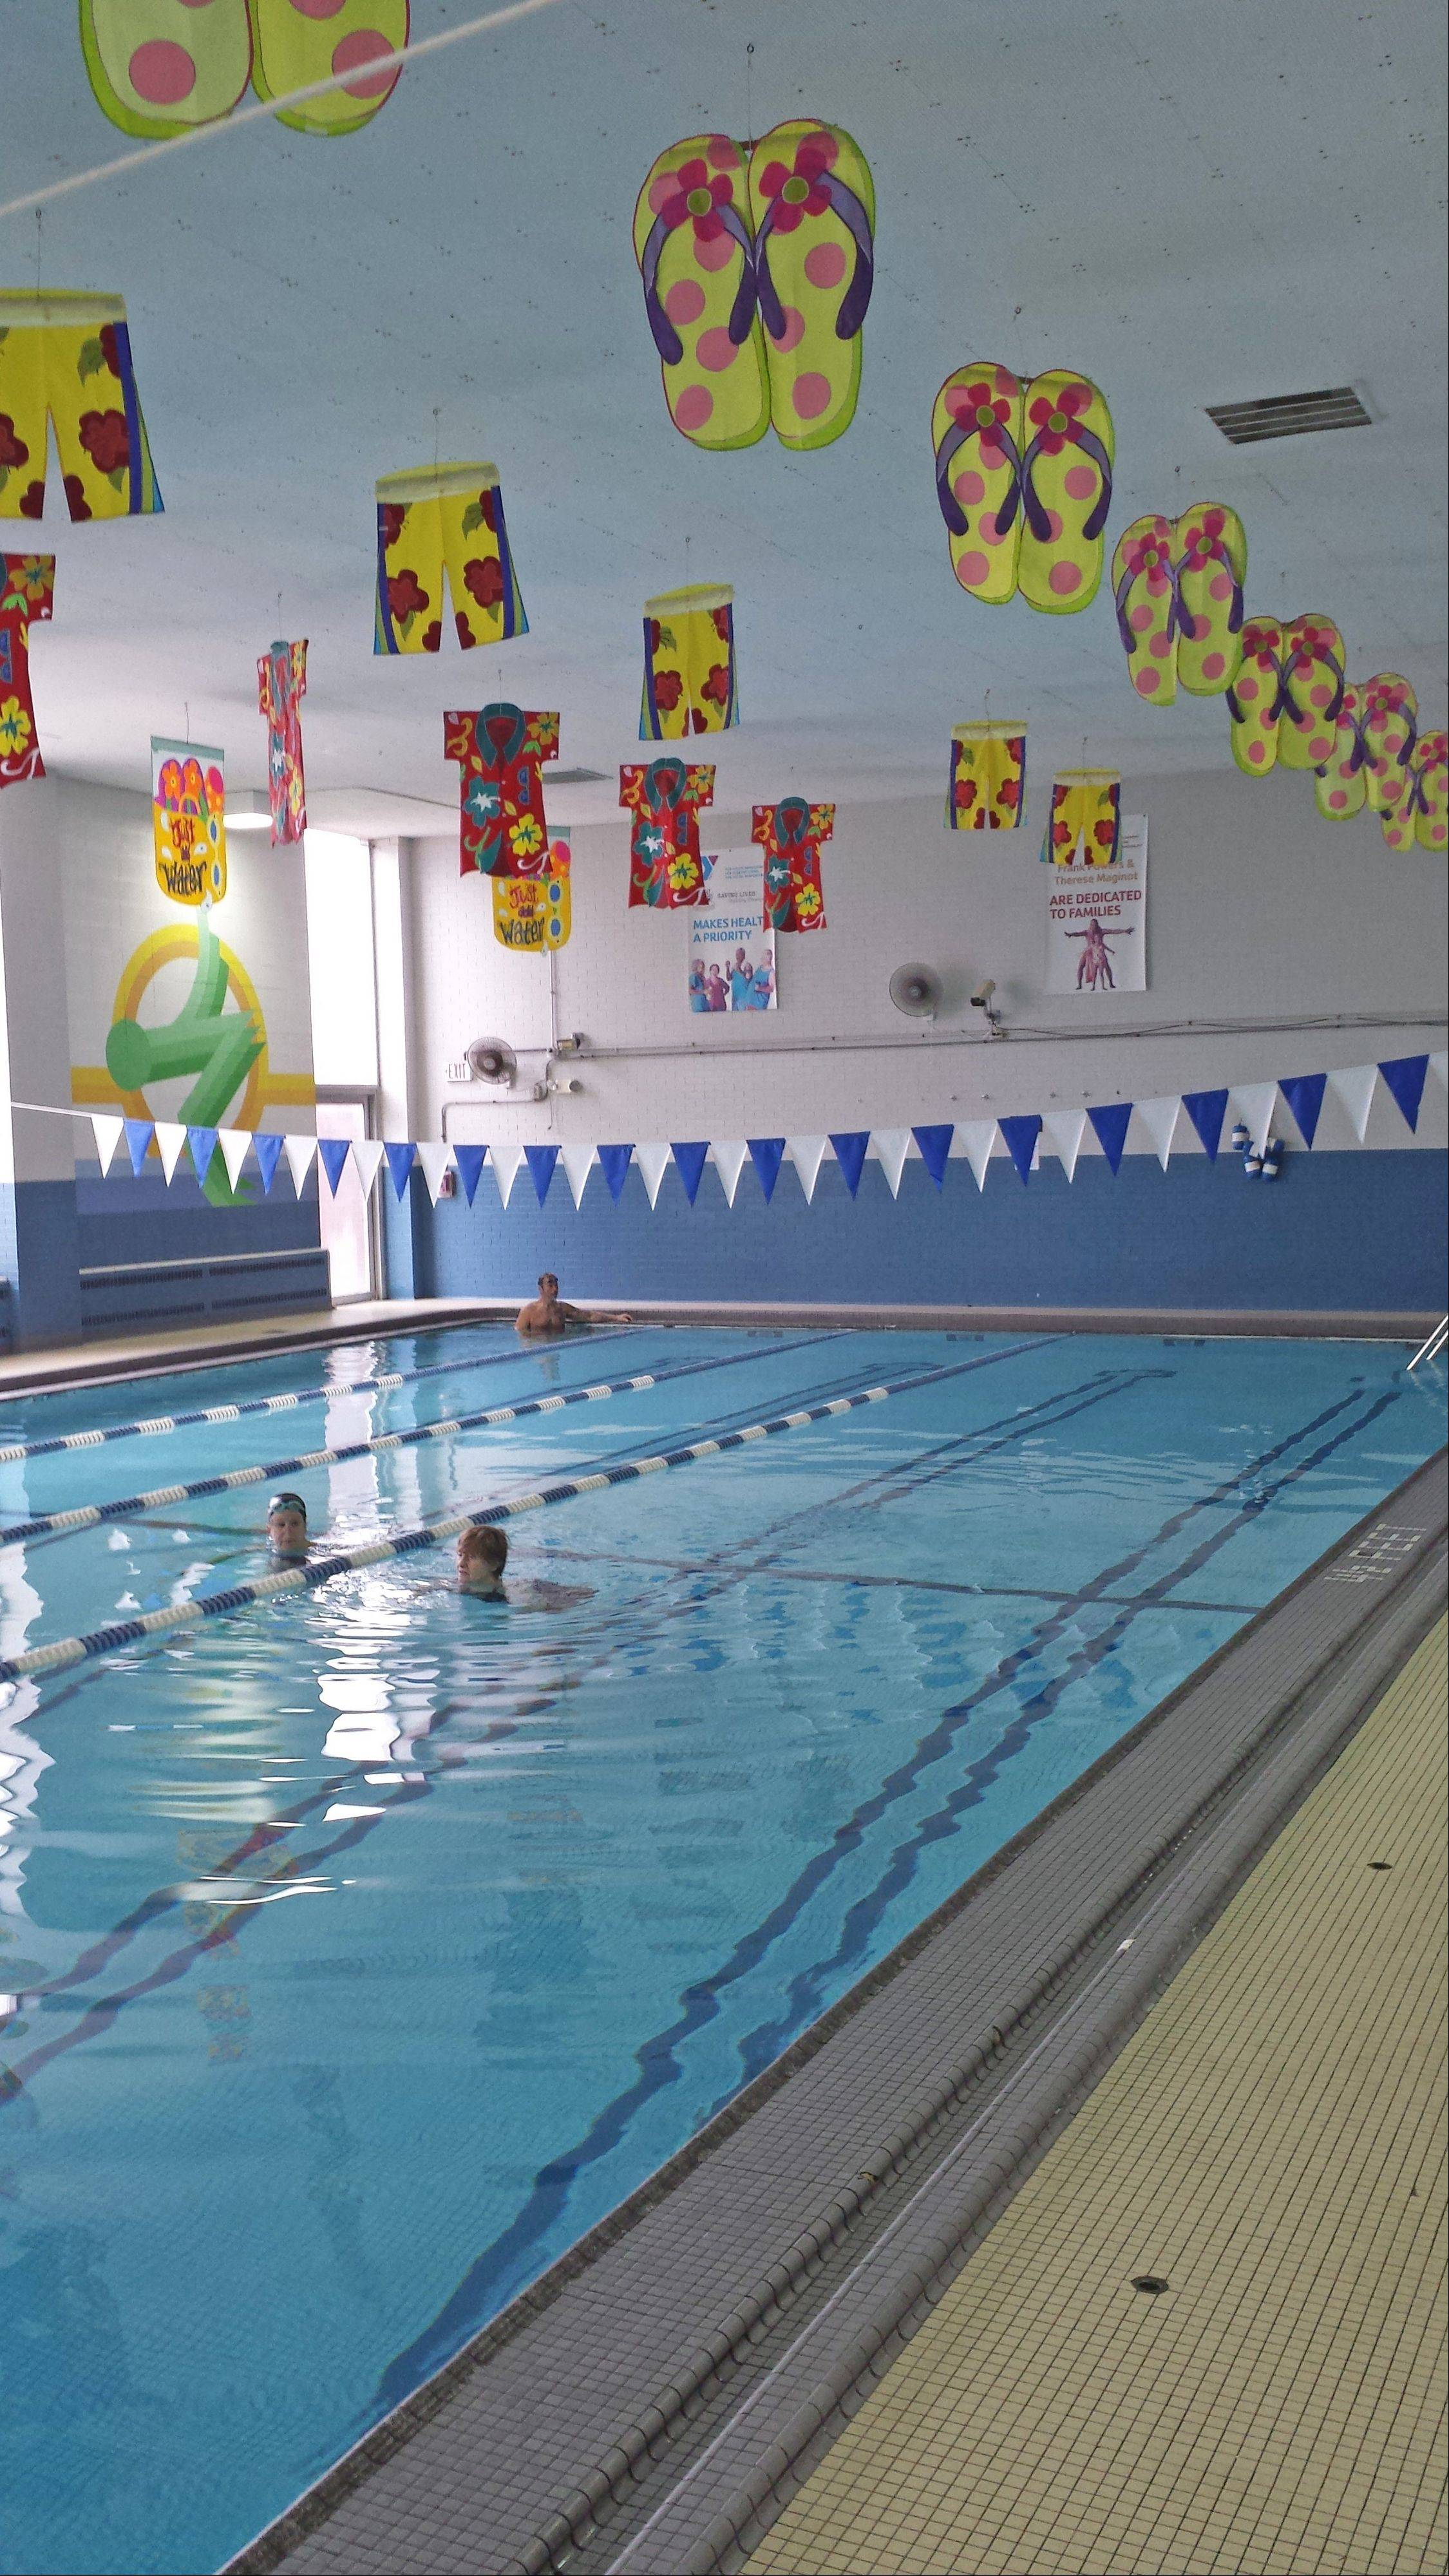 The B.R. Ryall YMCA in Glen Ellyn has a five-lane pool that is home to swim lessons for all ages, a swim team and water-based fitness programs.